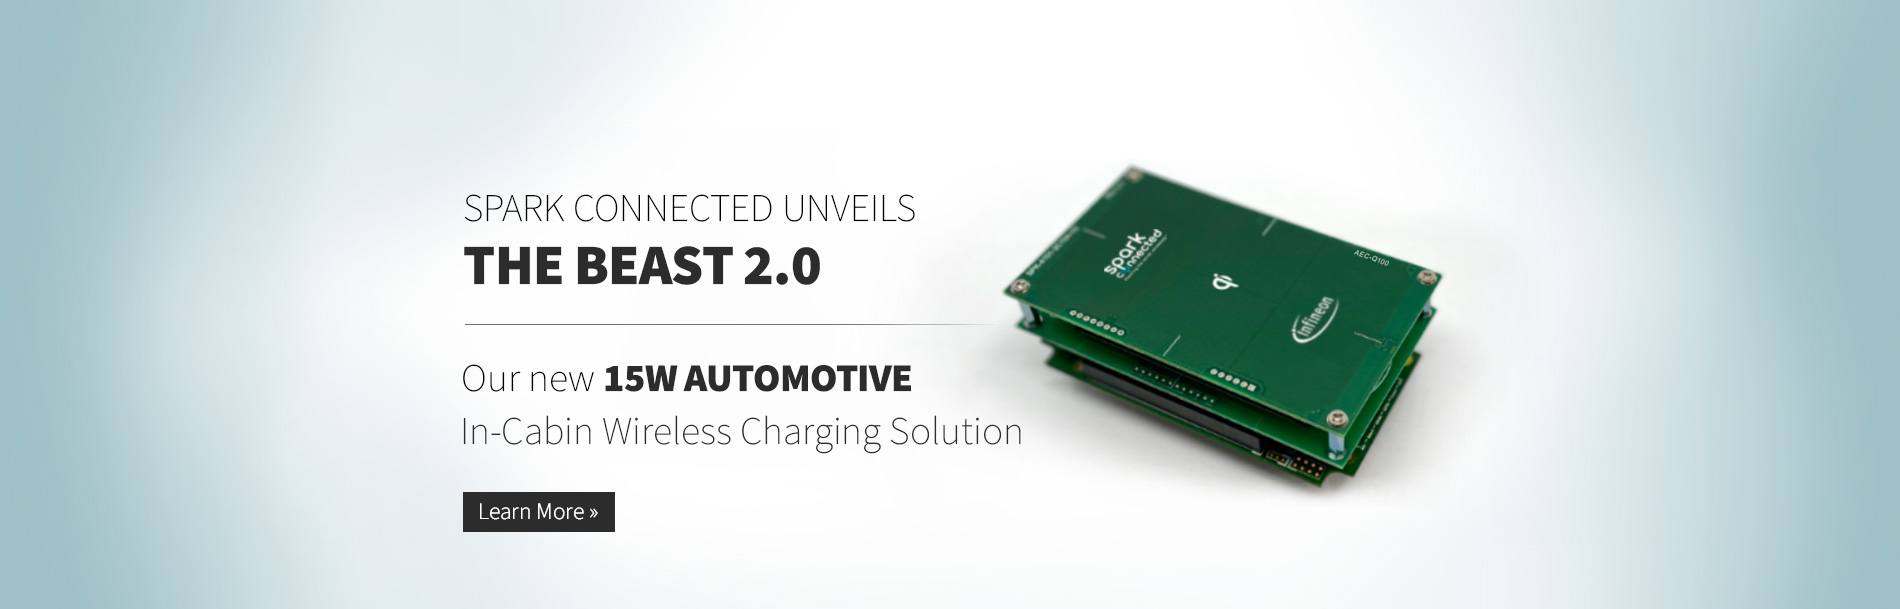 Spark Connected Unveils new Qi 15W Automotive In-Cabin Wireless Charging Solution Powered by AURIX™ and Traveo™ II